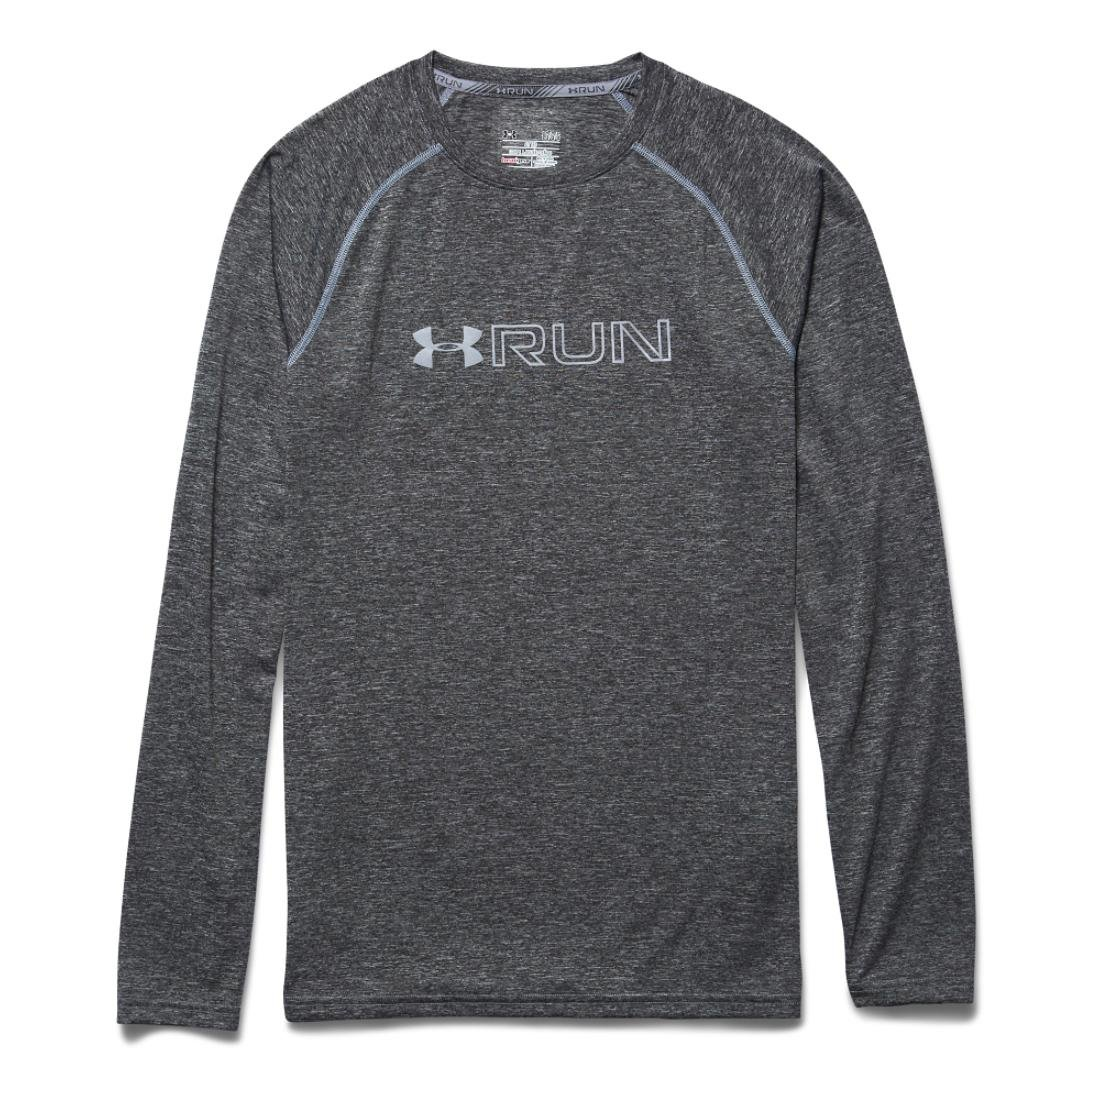 Under Armour Run Abe Twist LS Tee - Men& 039;s